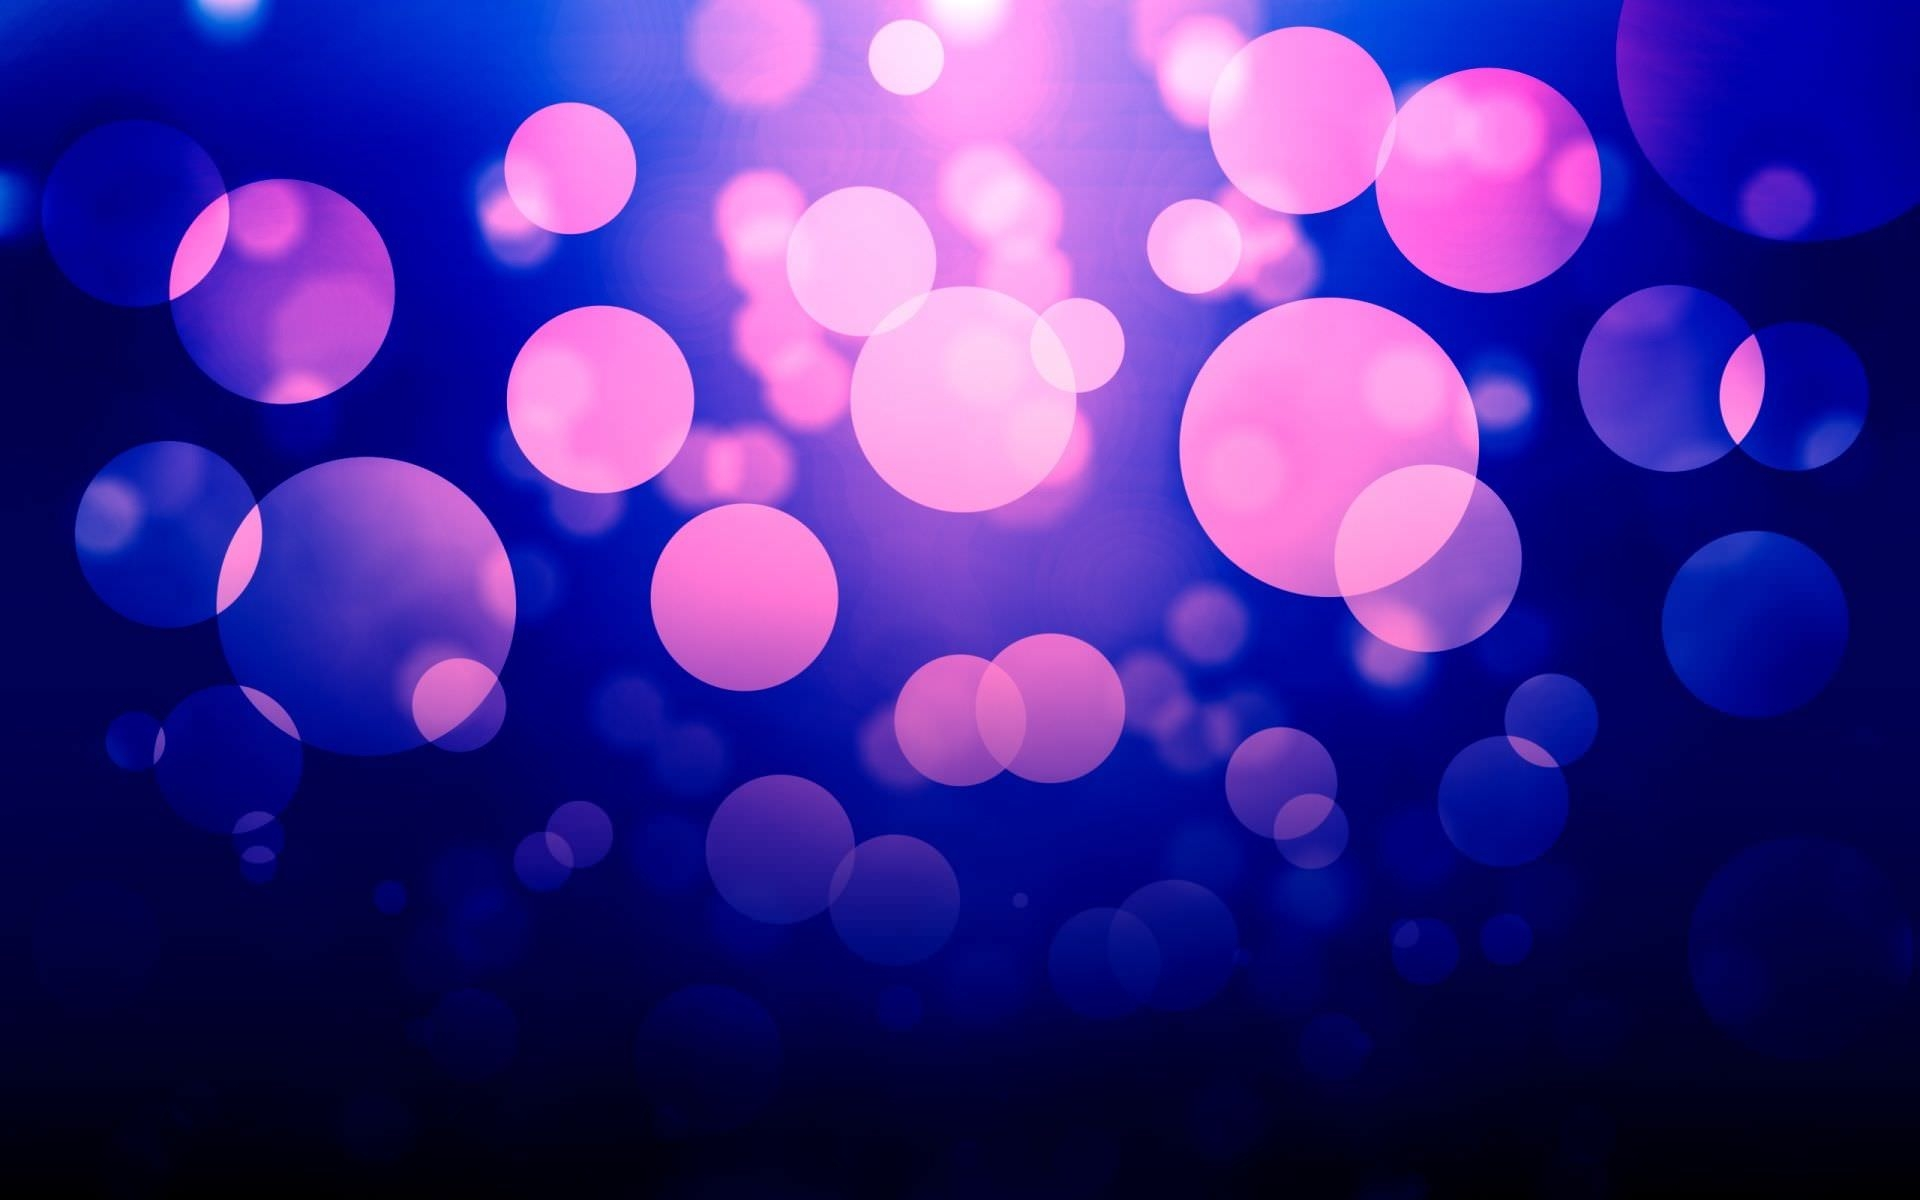 Bokeh Pink Bubbles Wallpaper